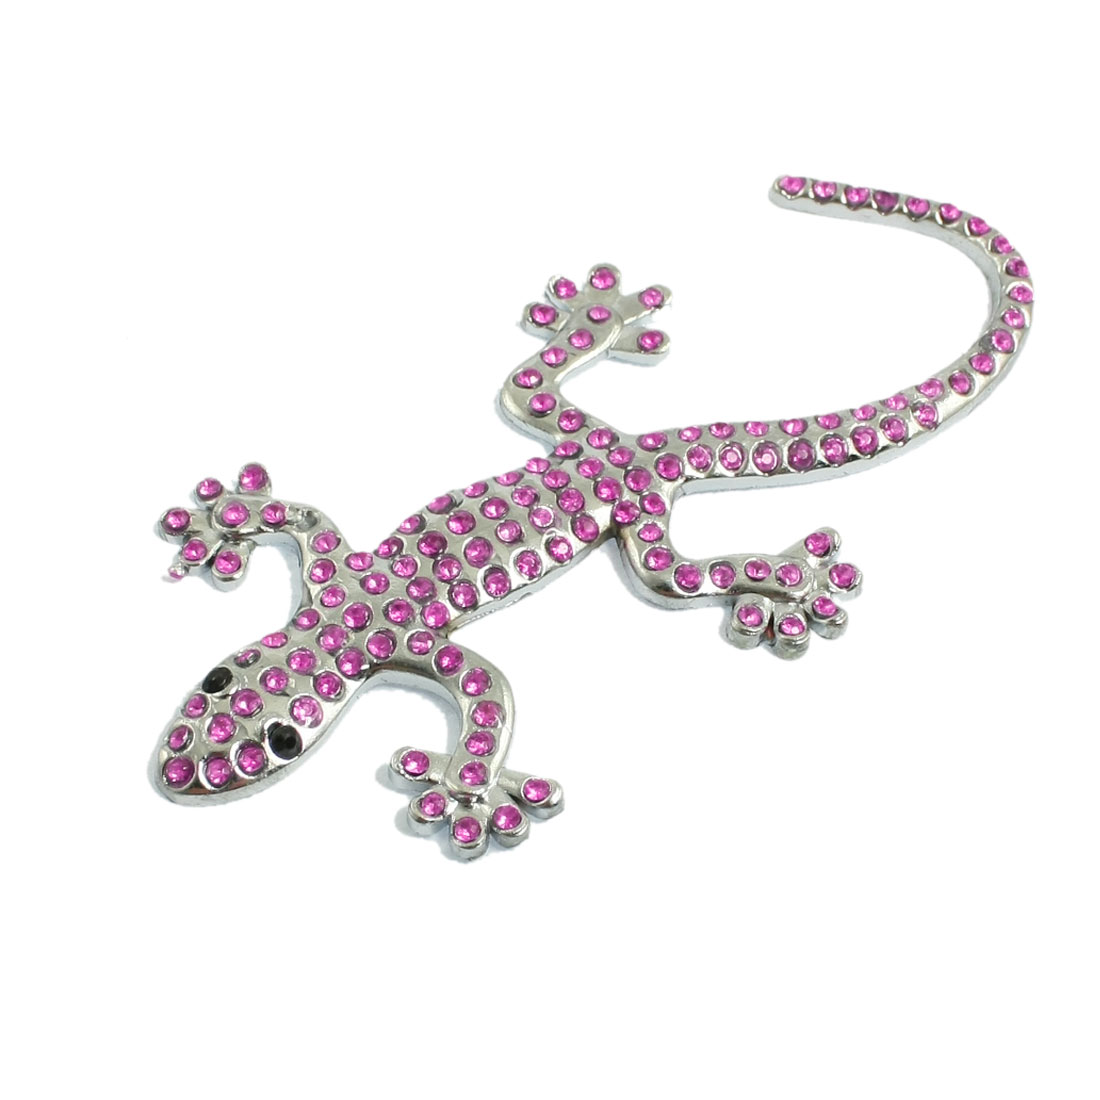 Car Magenta Rhinestone Decor Silver Tone Metal Gecko Style Sticker